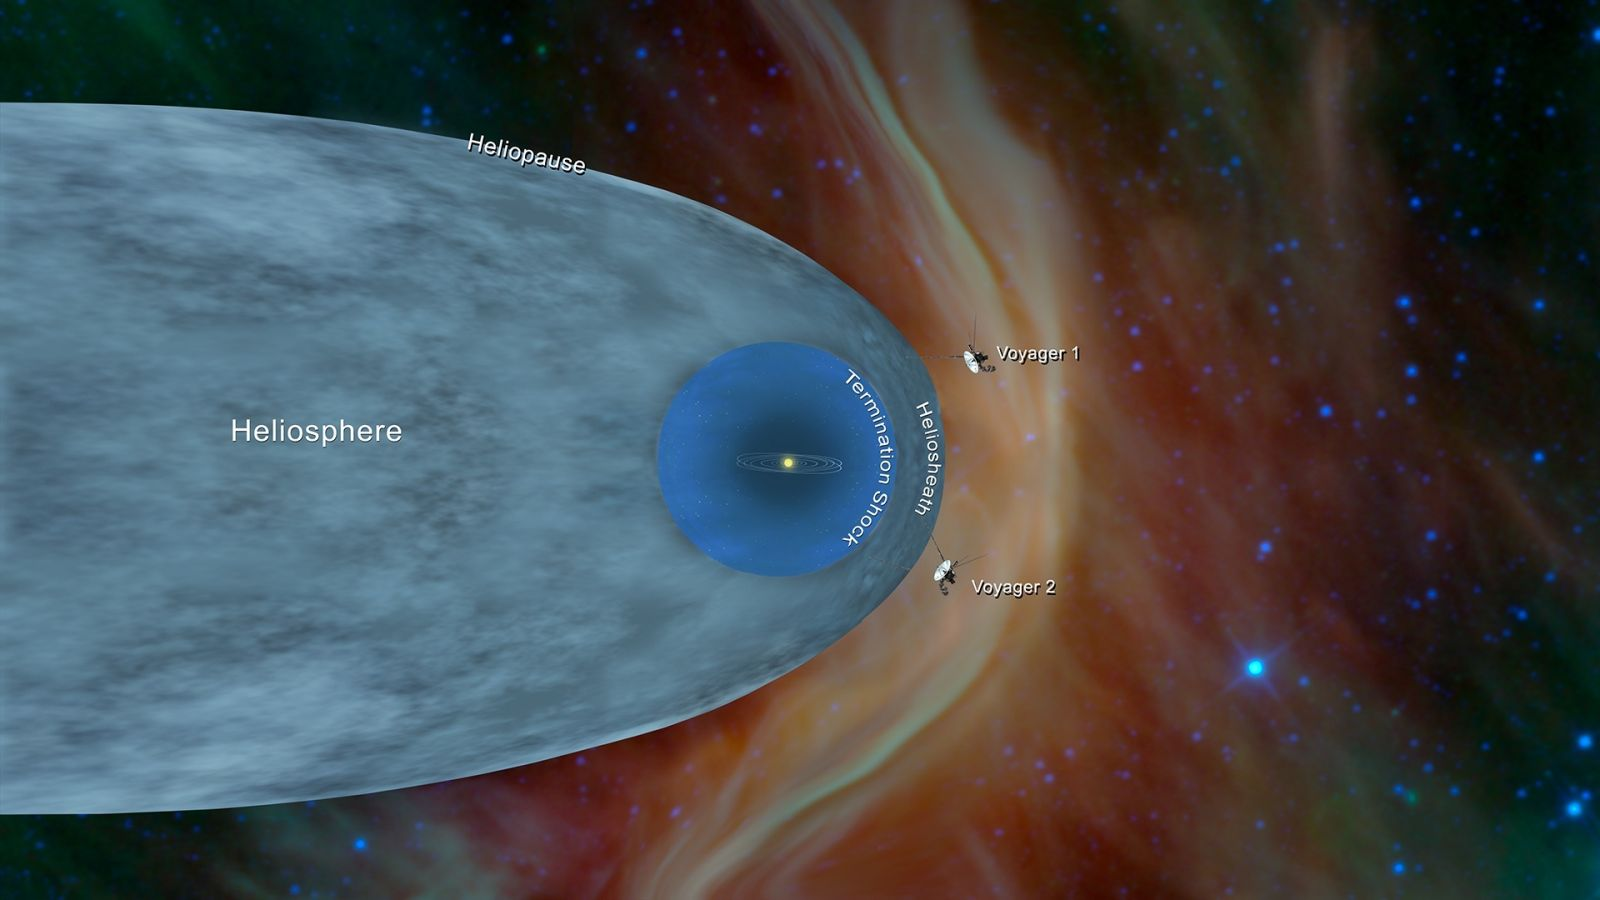 Infographic of NASA's Voyager 2 spacecraft entering interstellar space image credit NASA JPL